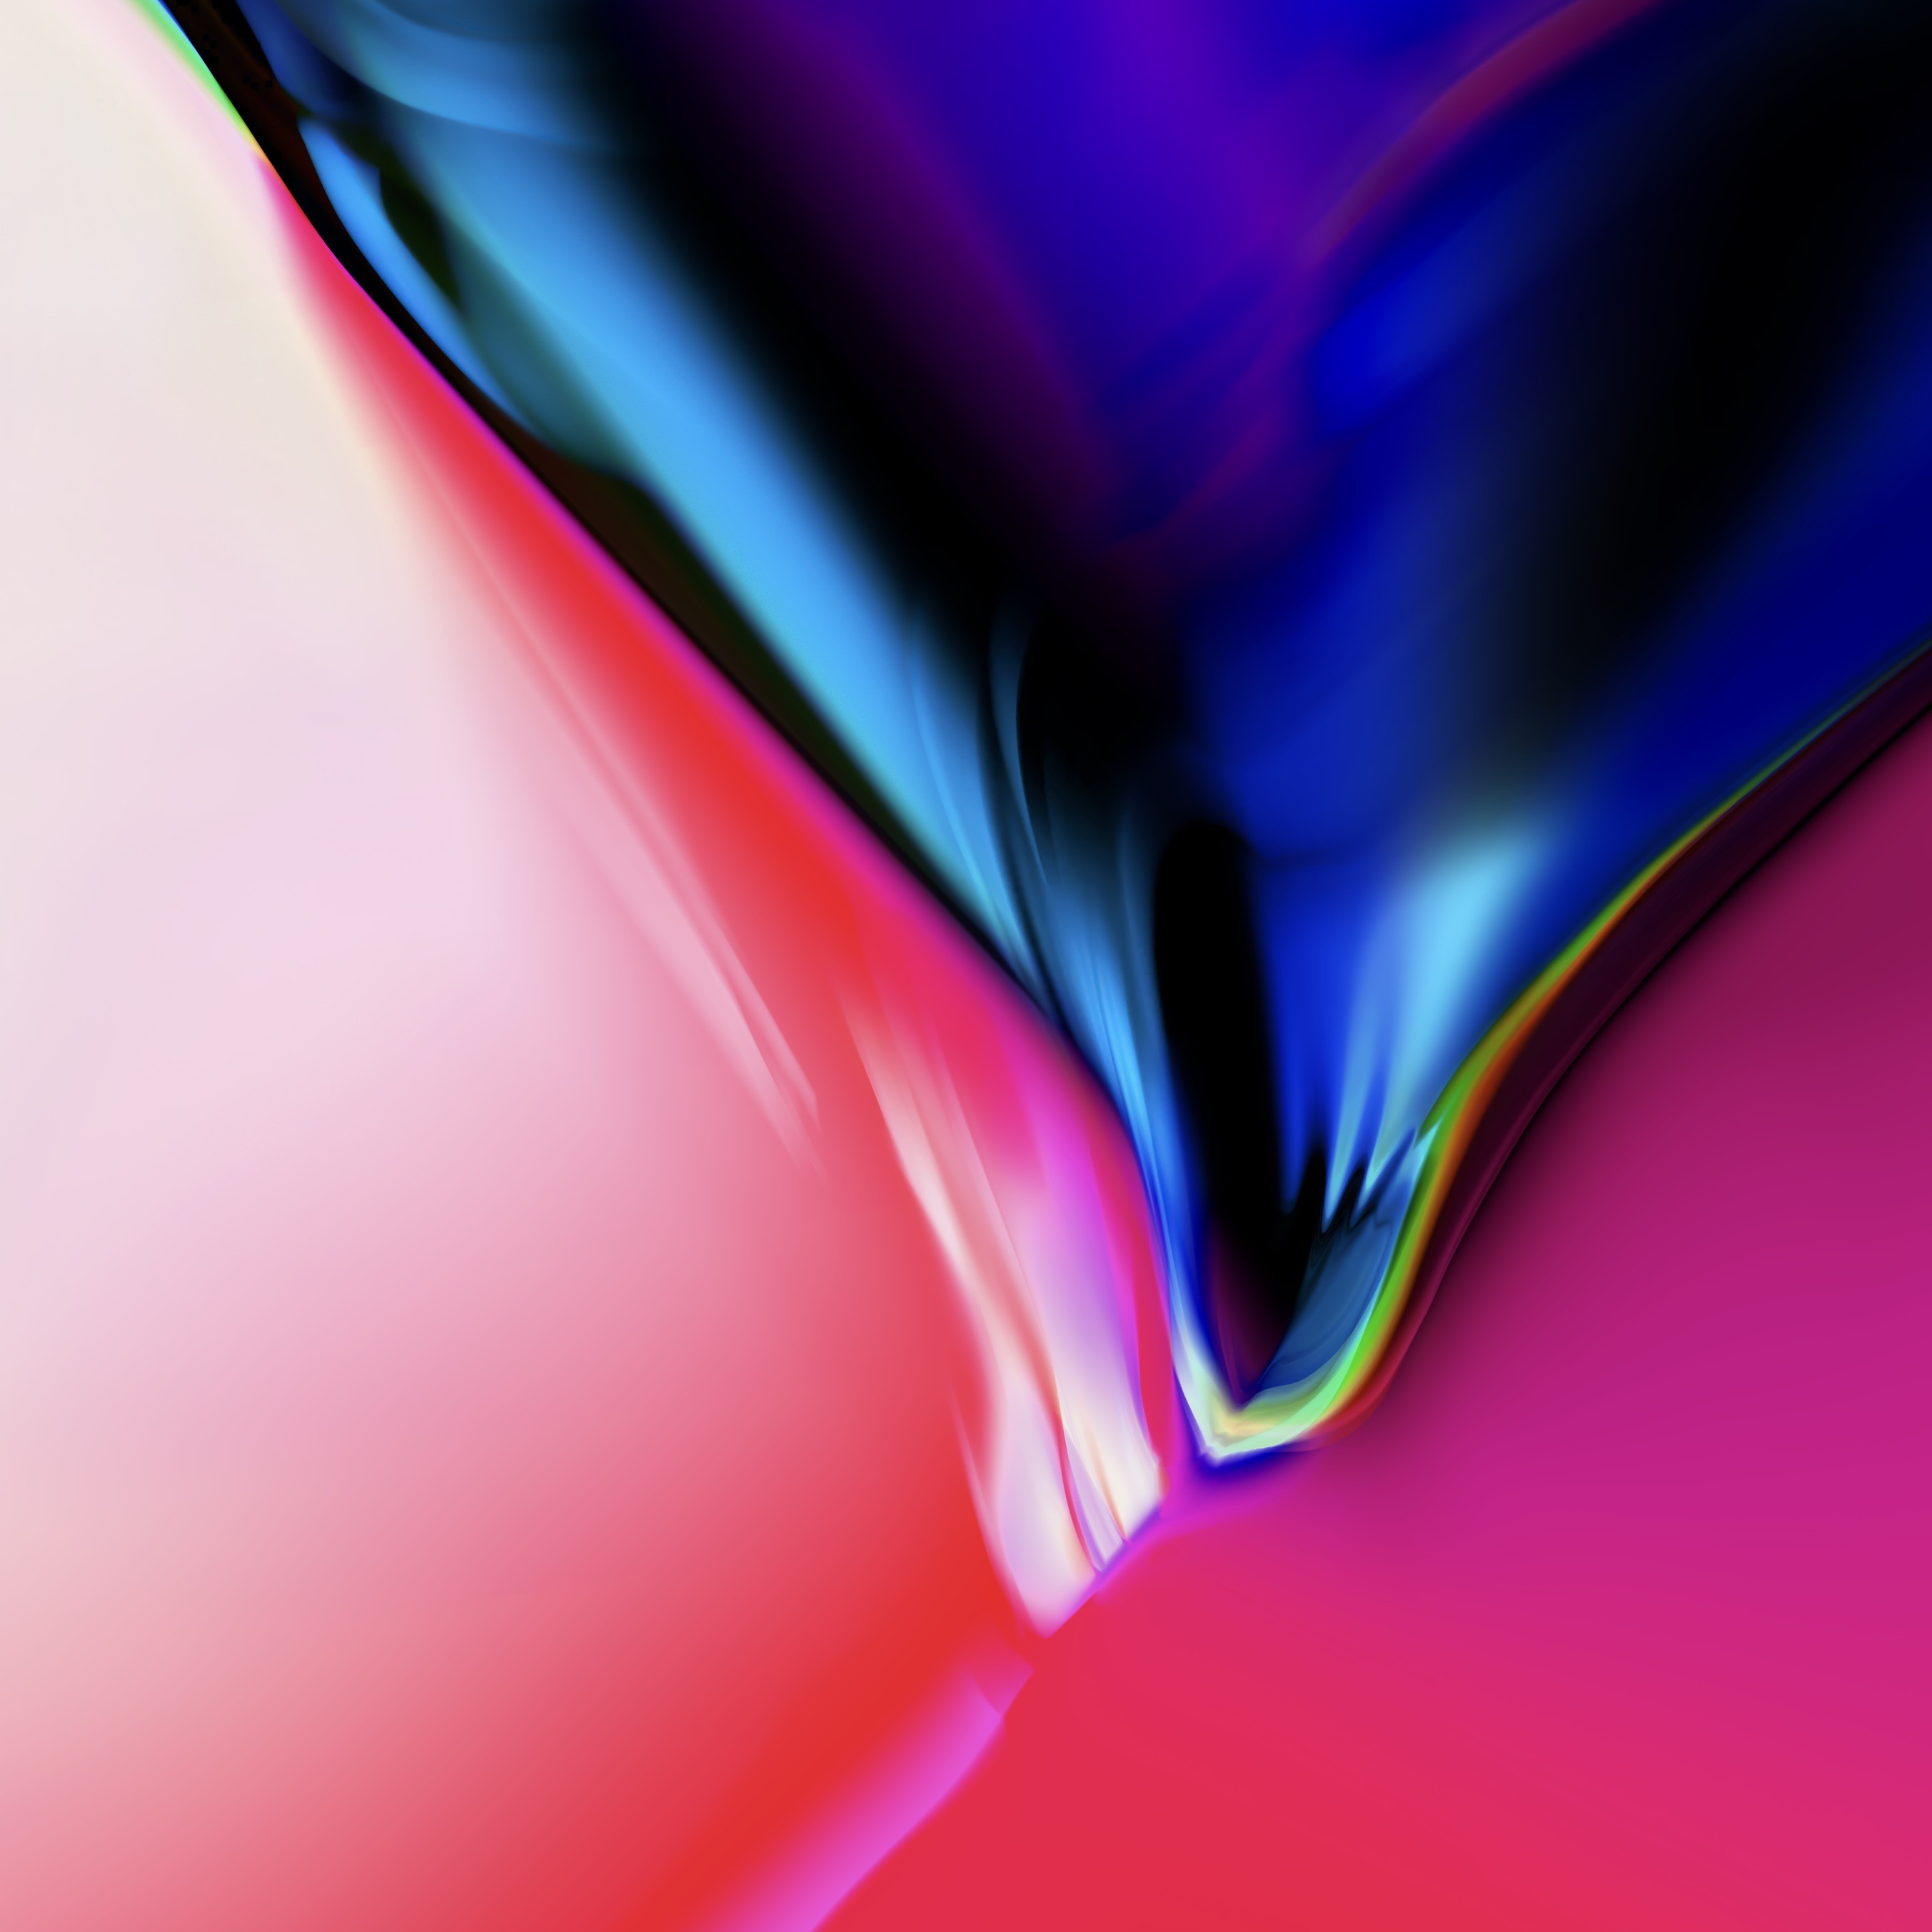 wallpaper iphone x wallpaper, iphone 8, ios 11, colorful, hd, os #15708